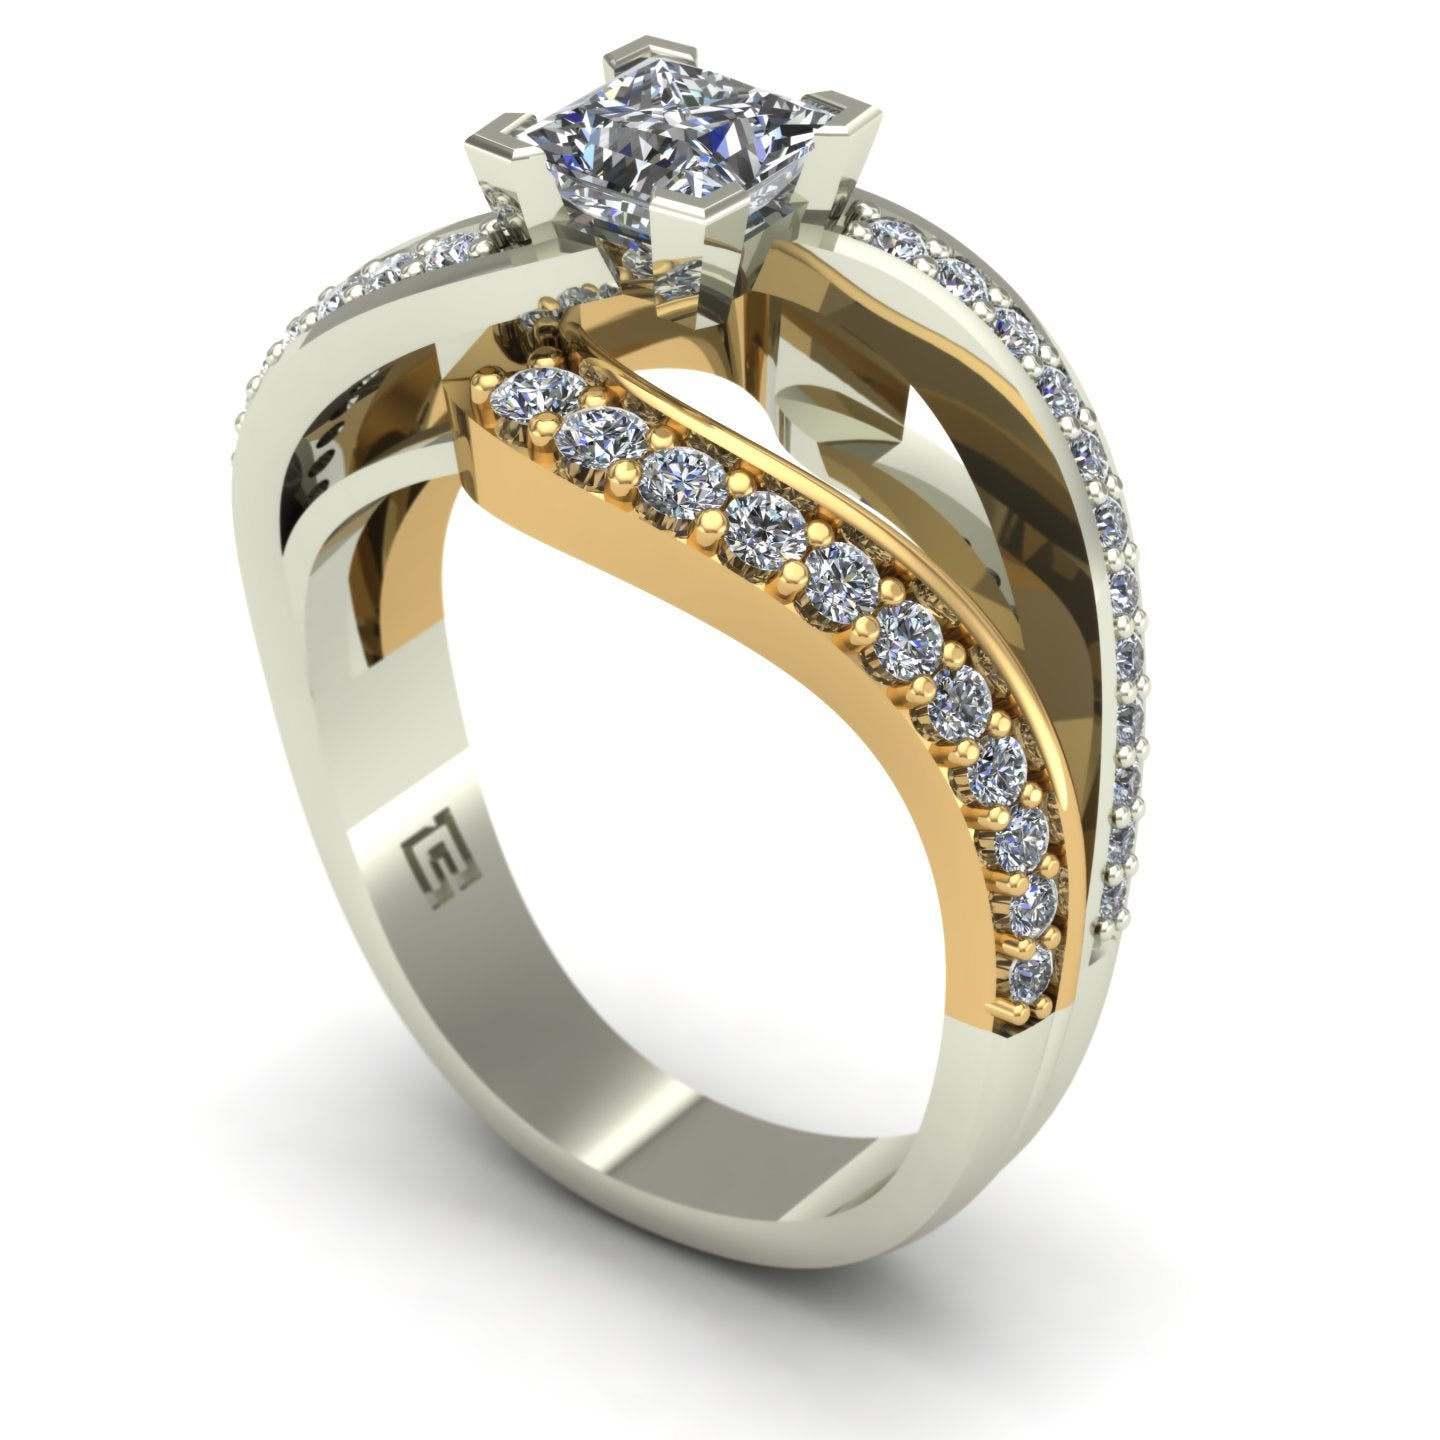 Princess diamond contemporary engagement ring in 14k yellow and white gold